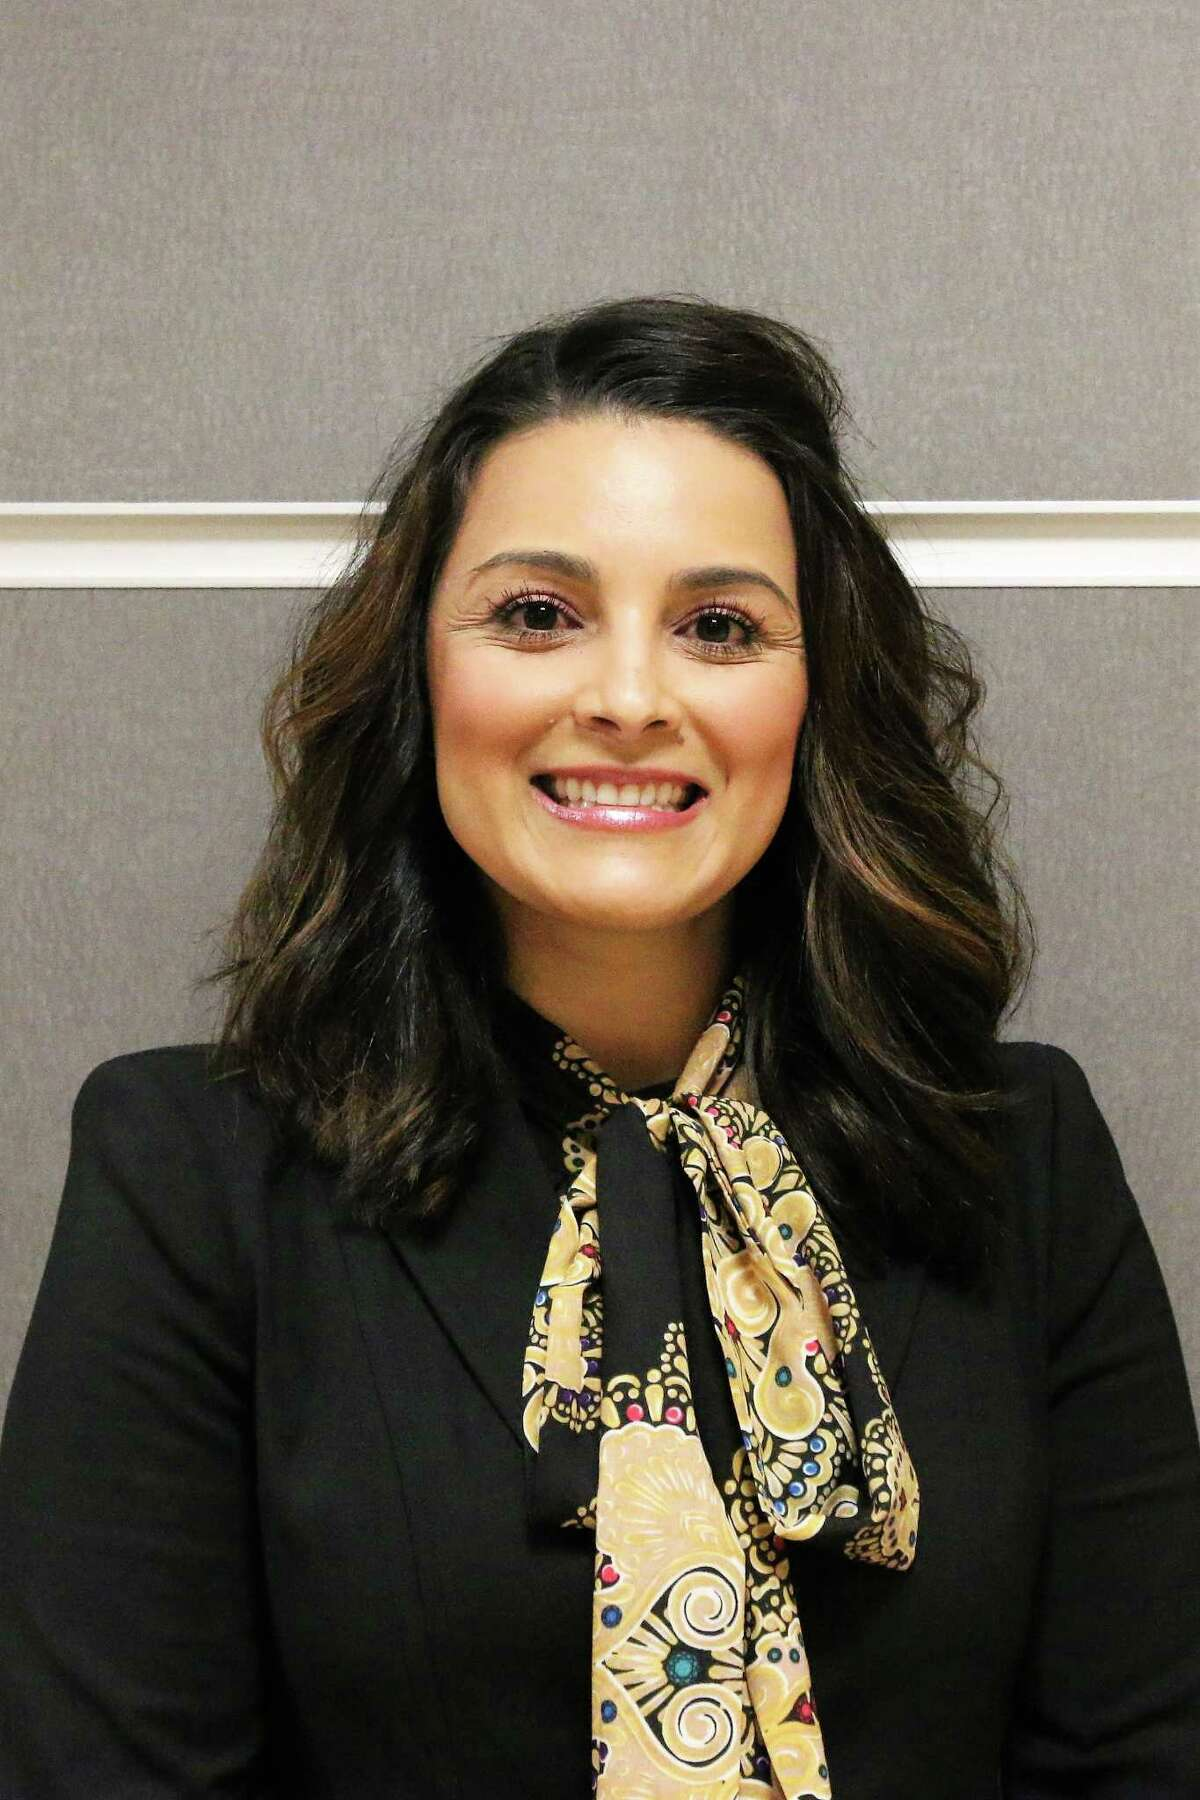 At their meeting Tuesday night, the Conroe ISD Board of Trustees approved Crystal Poncho as the new principal of Snyder Elementary.